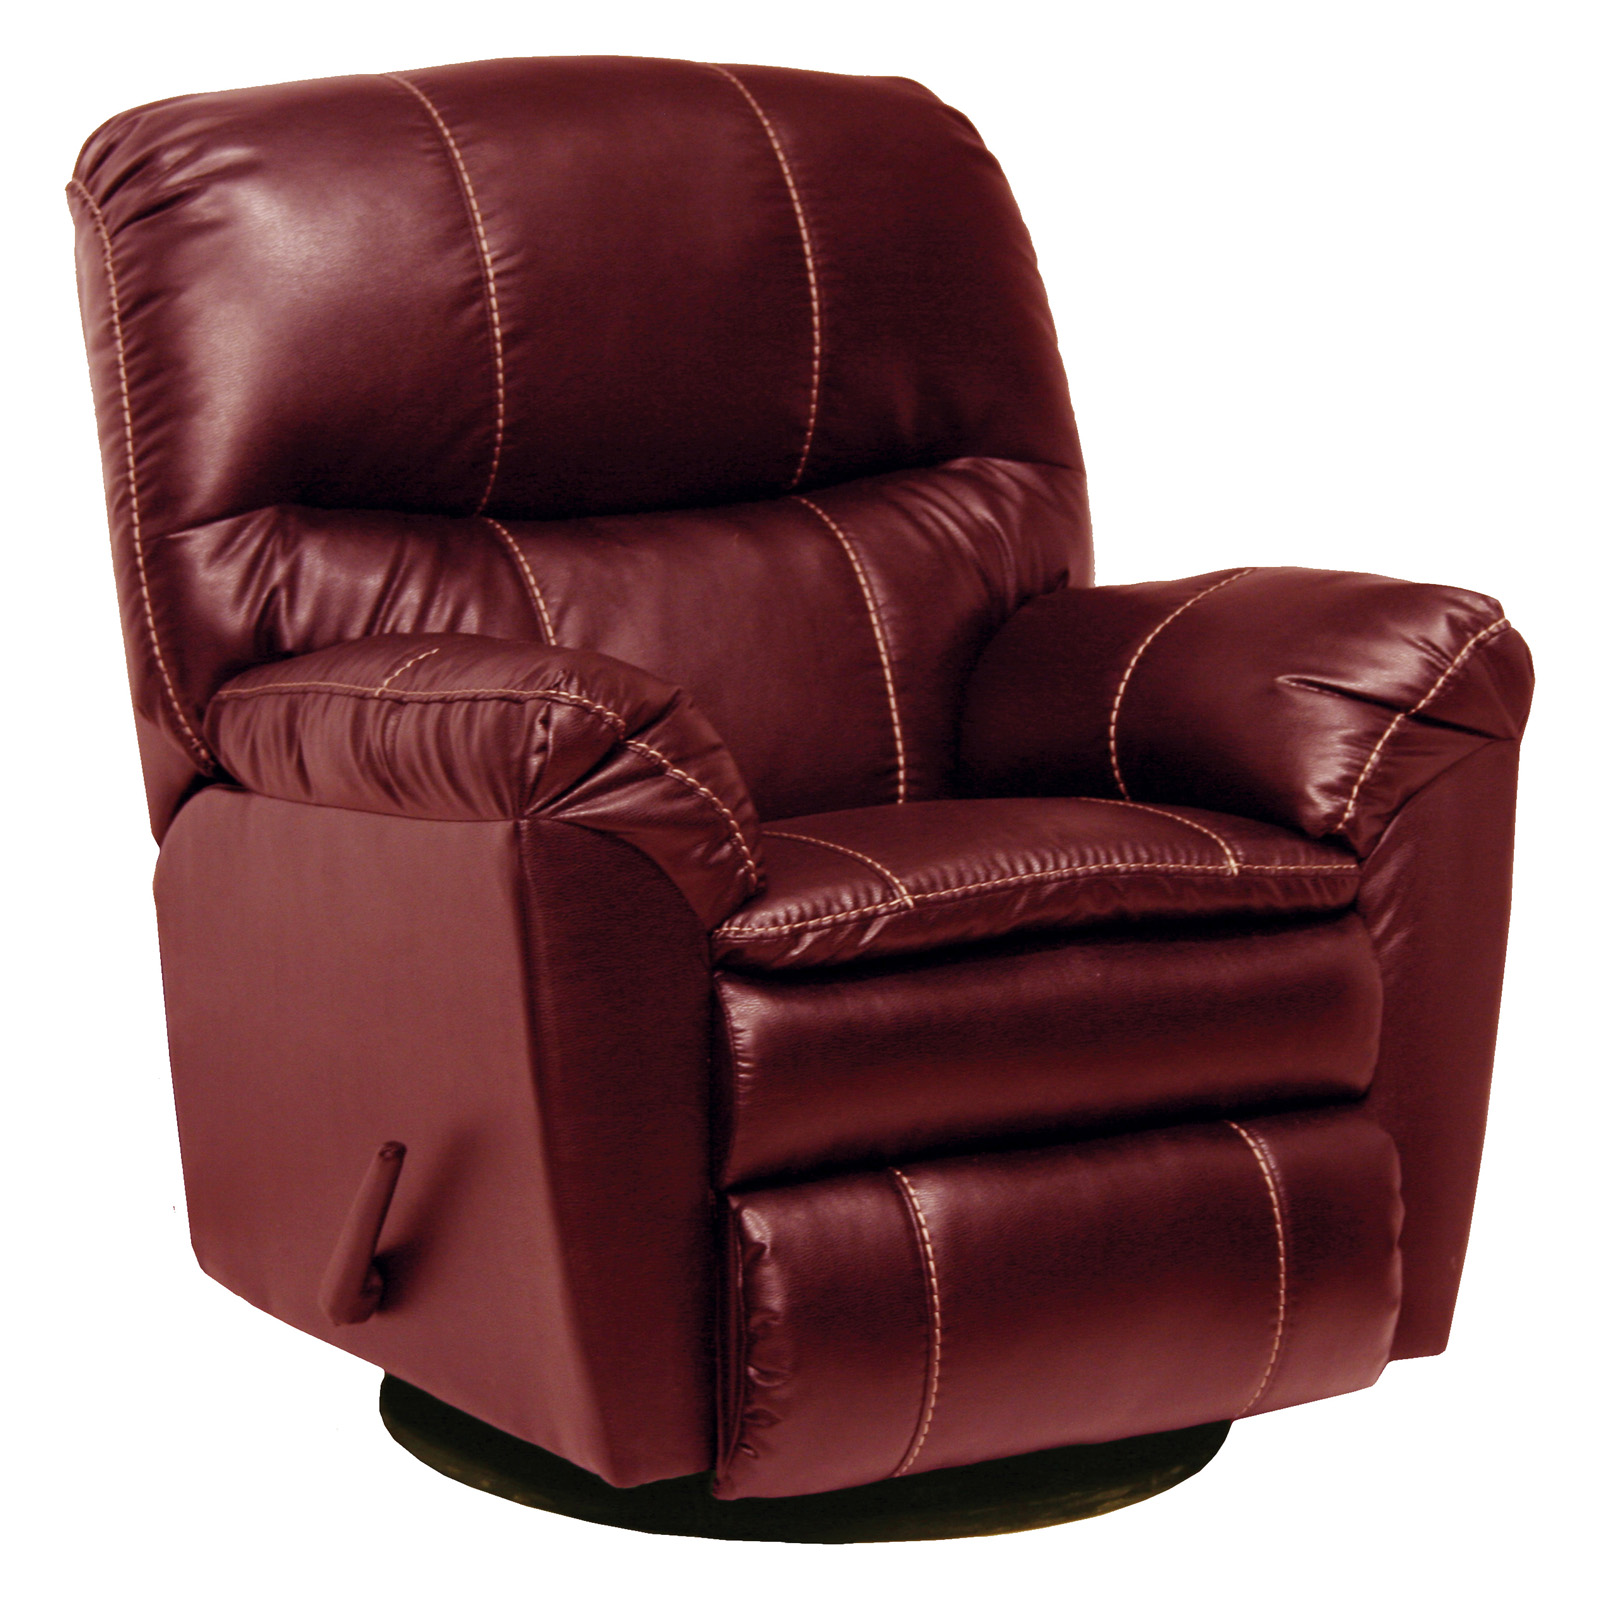 Catnapper Cosmo Bonded Leather Swivel Glider Recliner